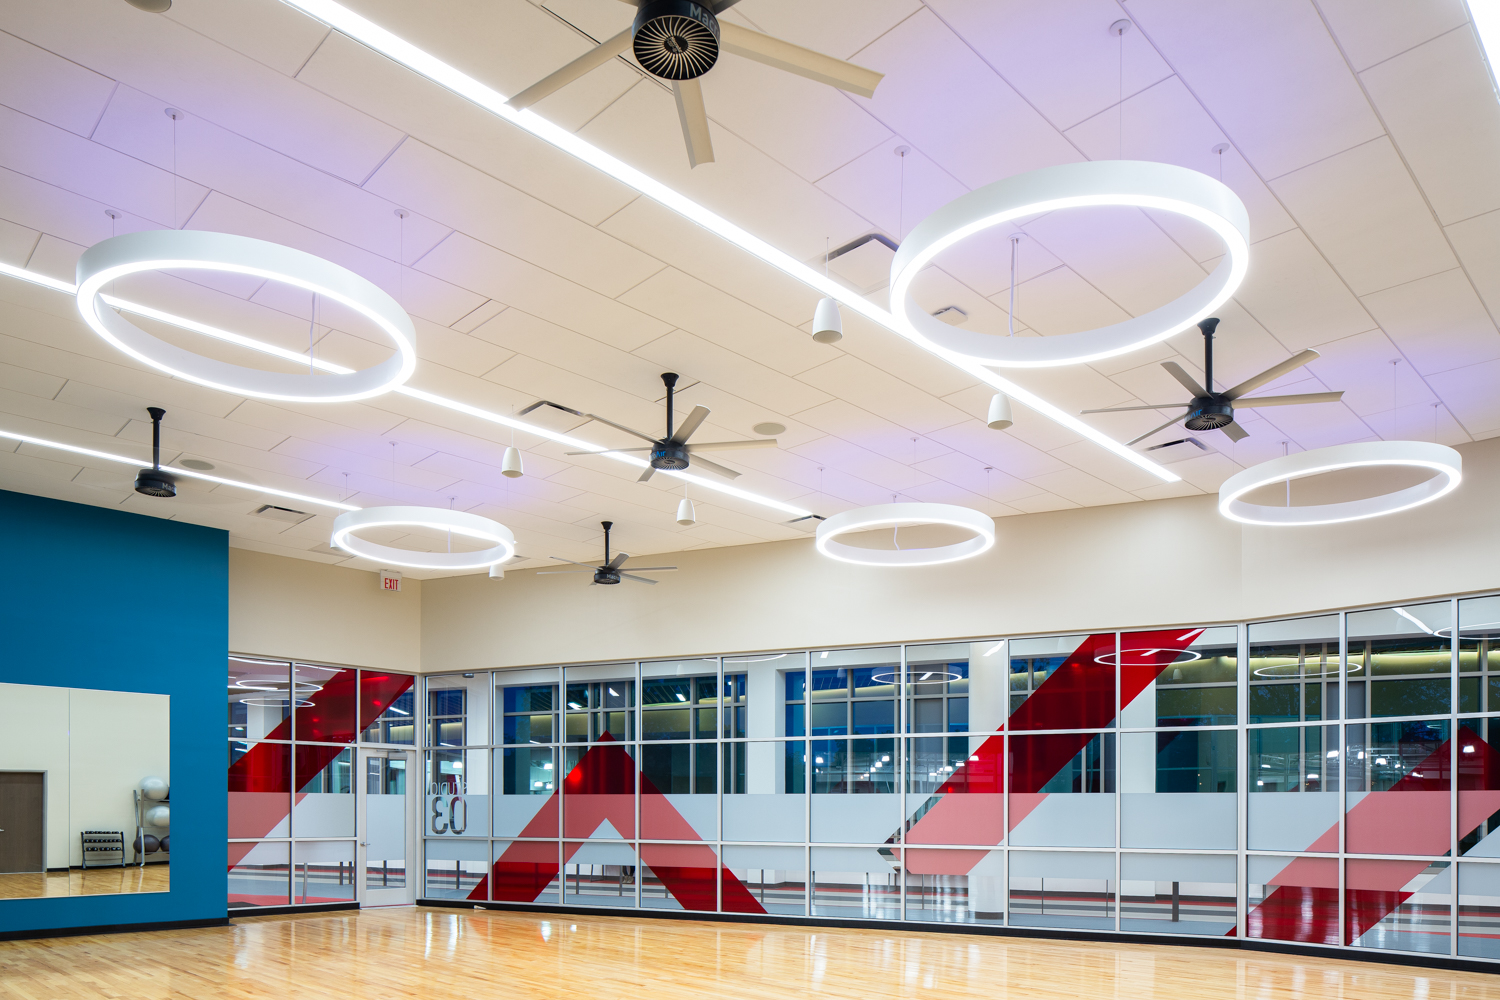 Commercial interiors and exterior photography